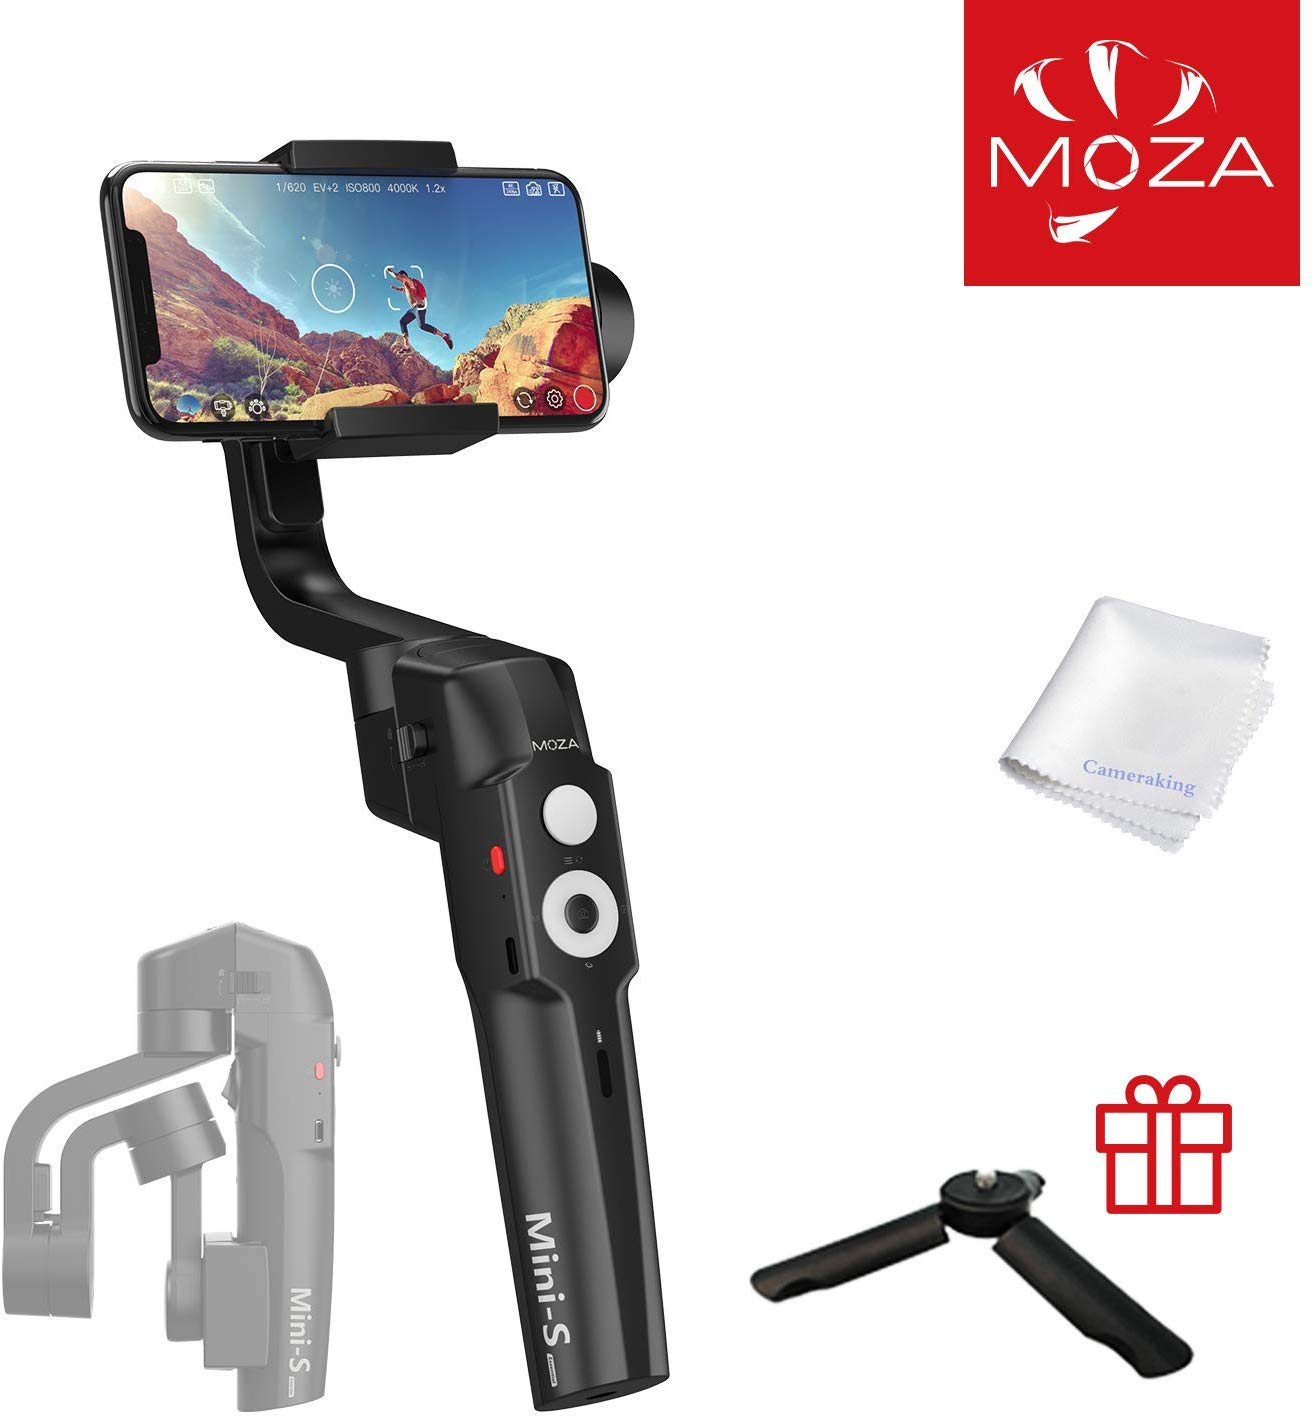 MOZA Mini-S  Gimbal stabilizer for Smartphone